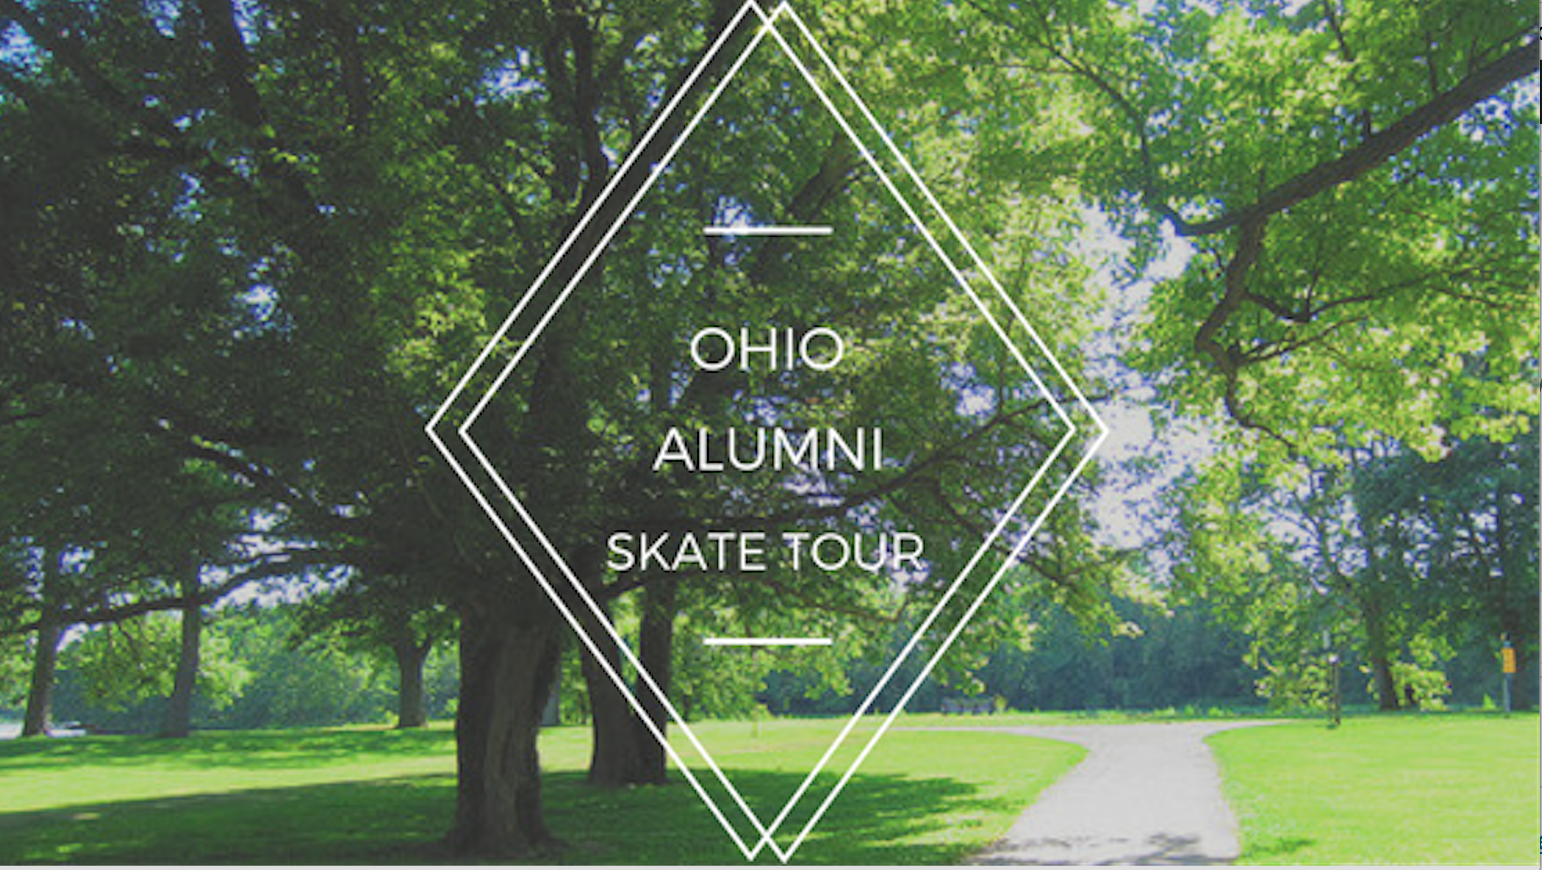 Ohio Inline Skating Tour: New Alumni Tour to Celebrate Zephyr's 20th Anniversary